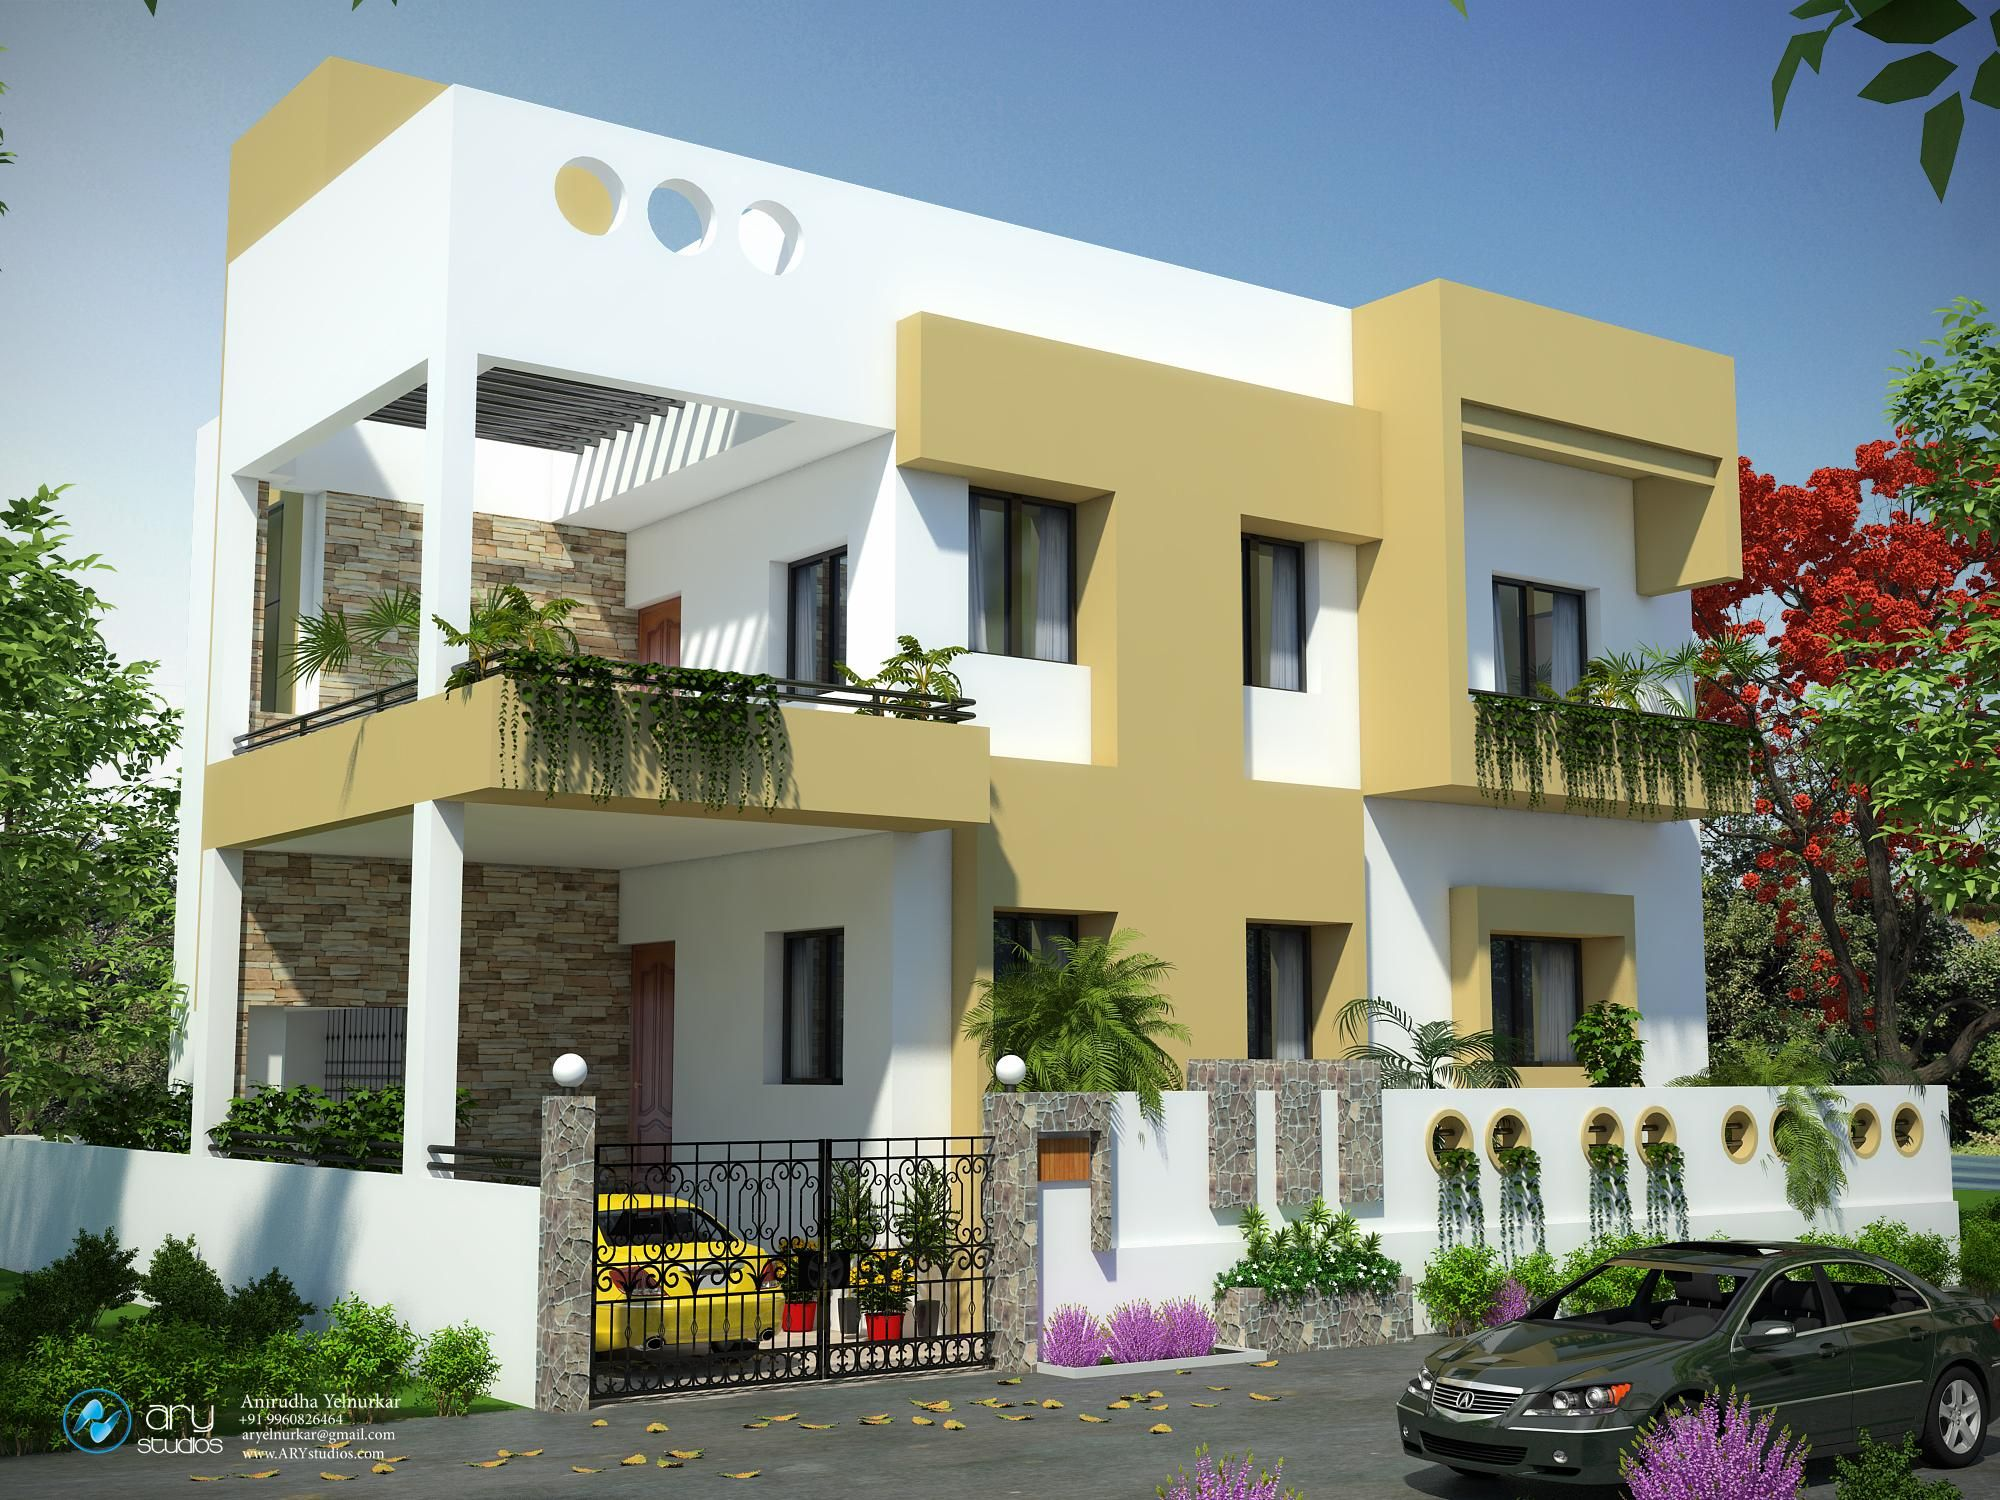 Painting Exterior Walls Concept Plans Custom Indian Residential Building Designs Apartment Elev  Exterior . Design Ideas